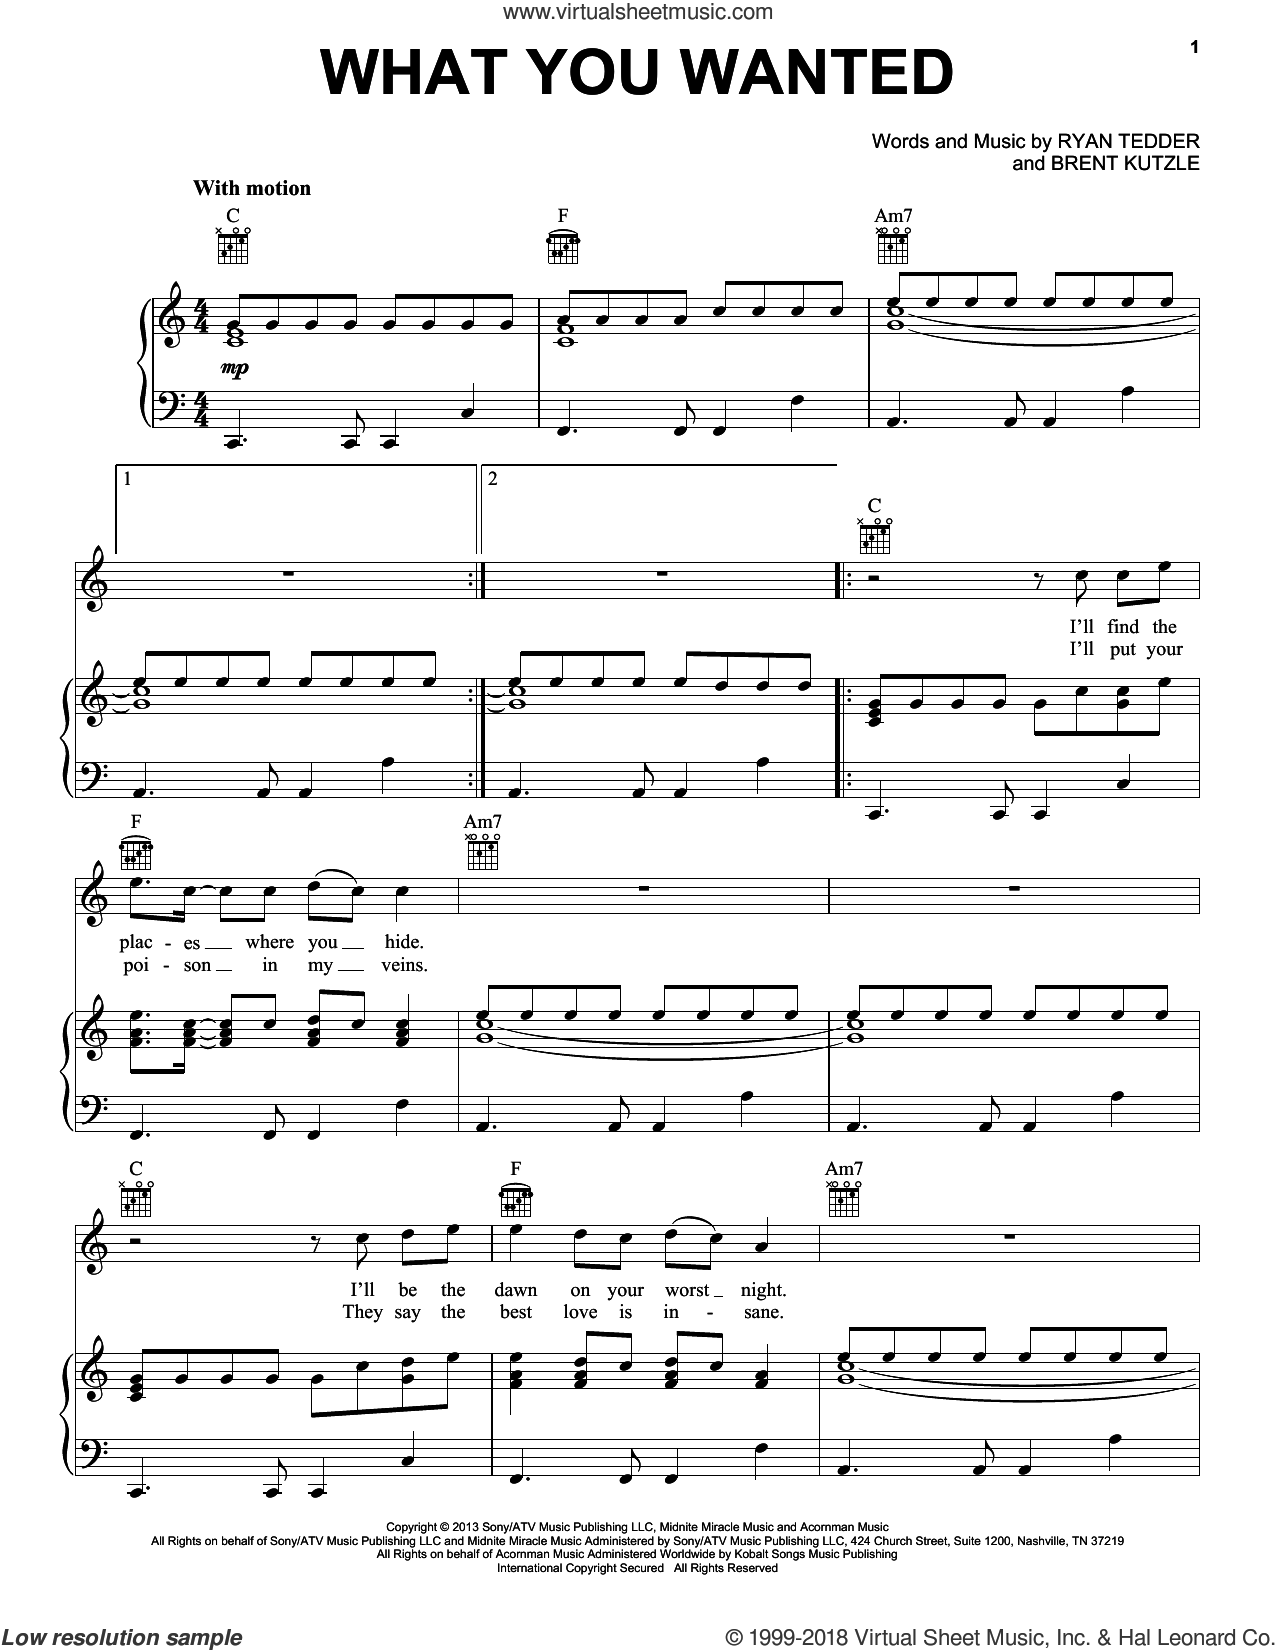 What You Wanted sheet music for voice, piano or guitar by OneRepublic, Brent Kutzle and Ryan Tedder, intermediate skill level